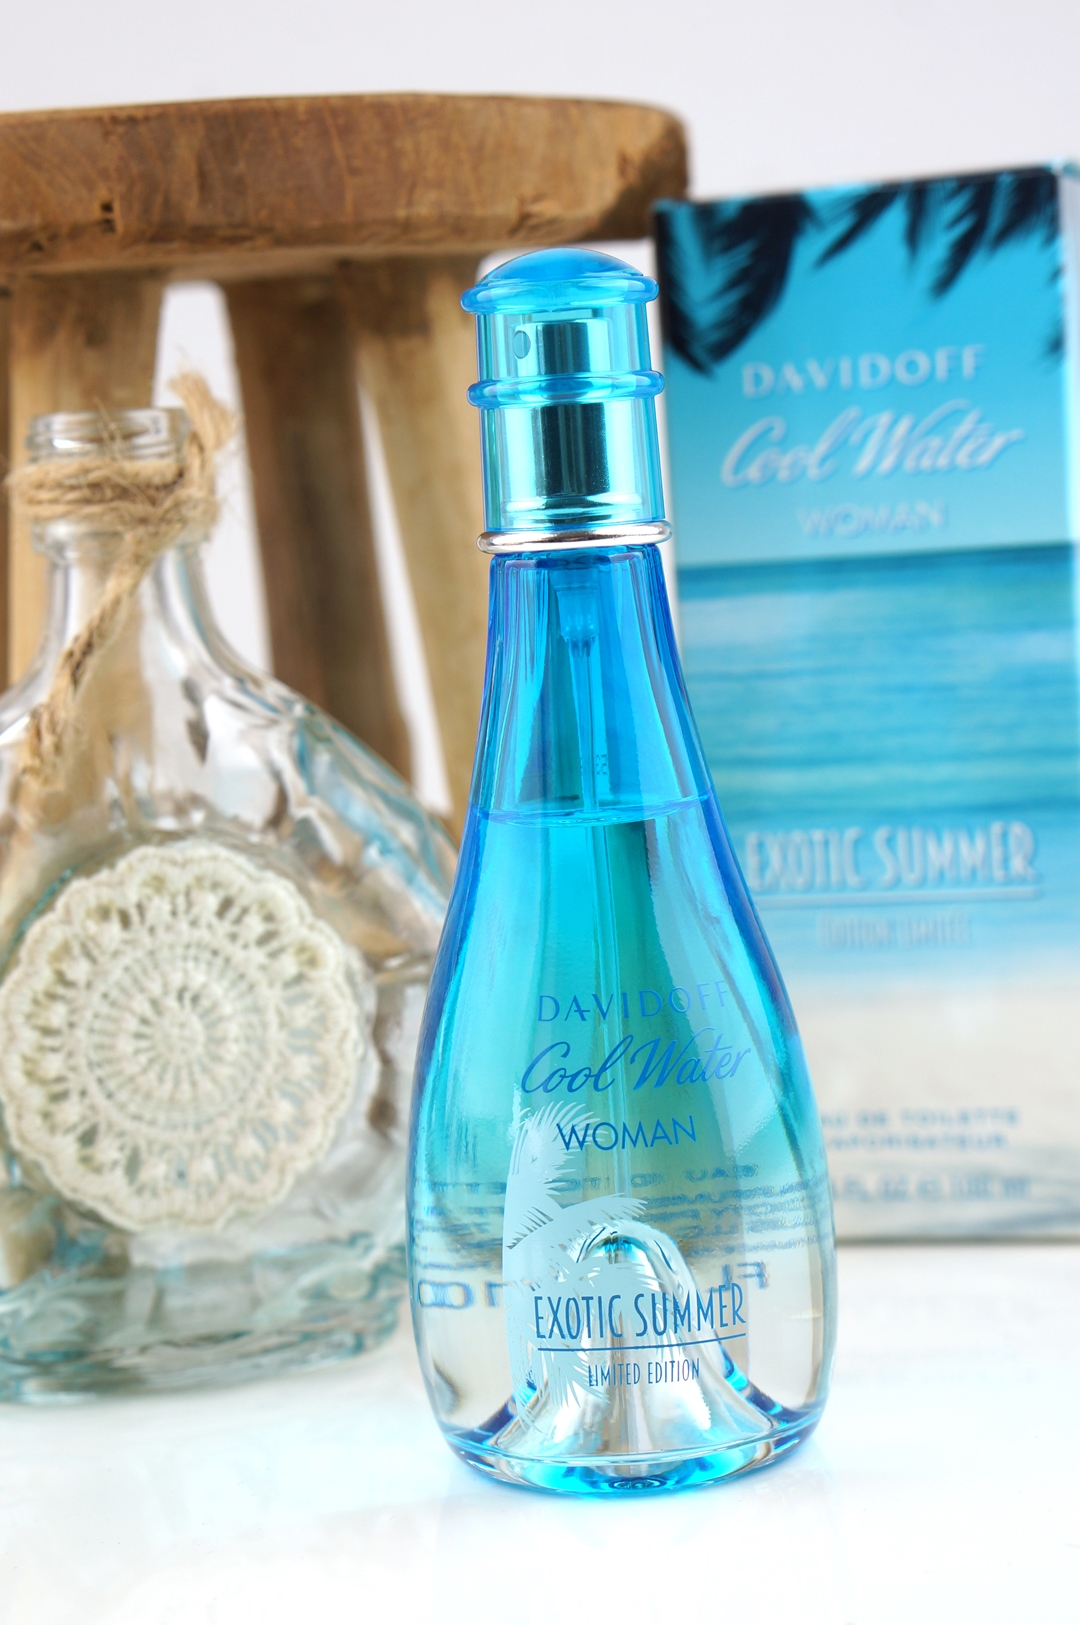 Davidoff Cool Water Exotic Summer, limited edition